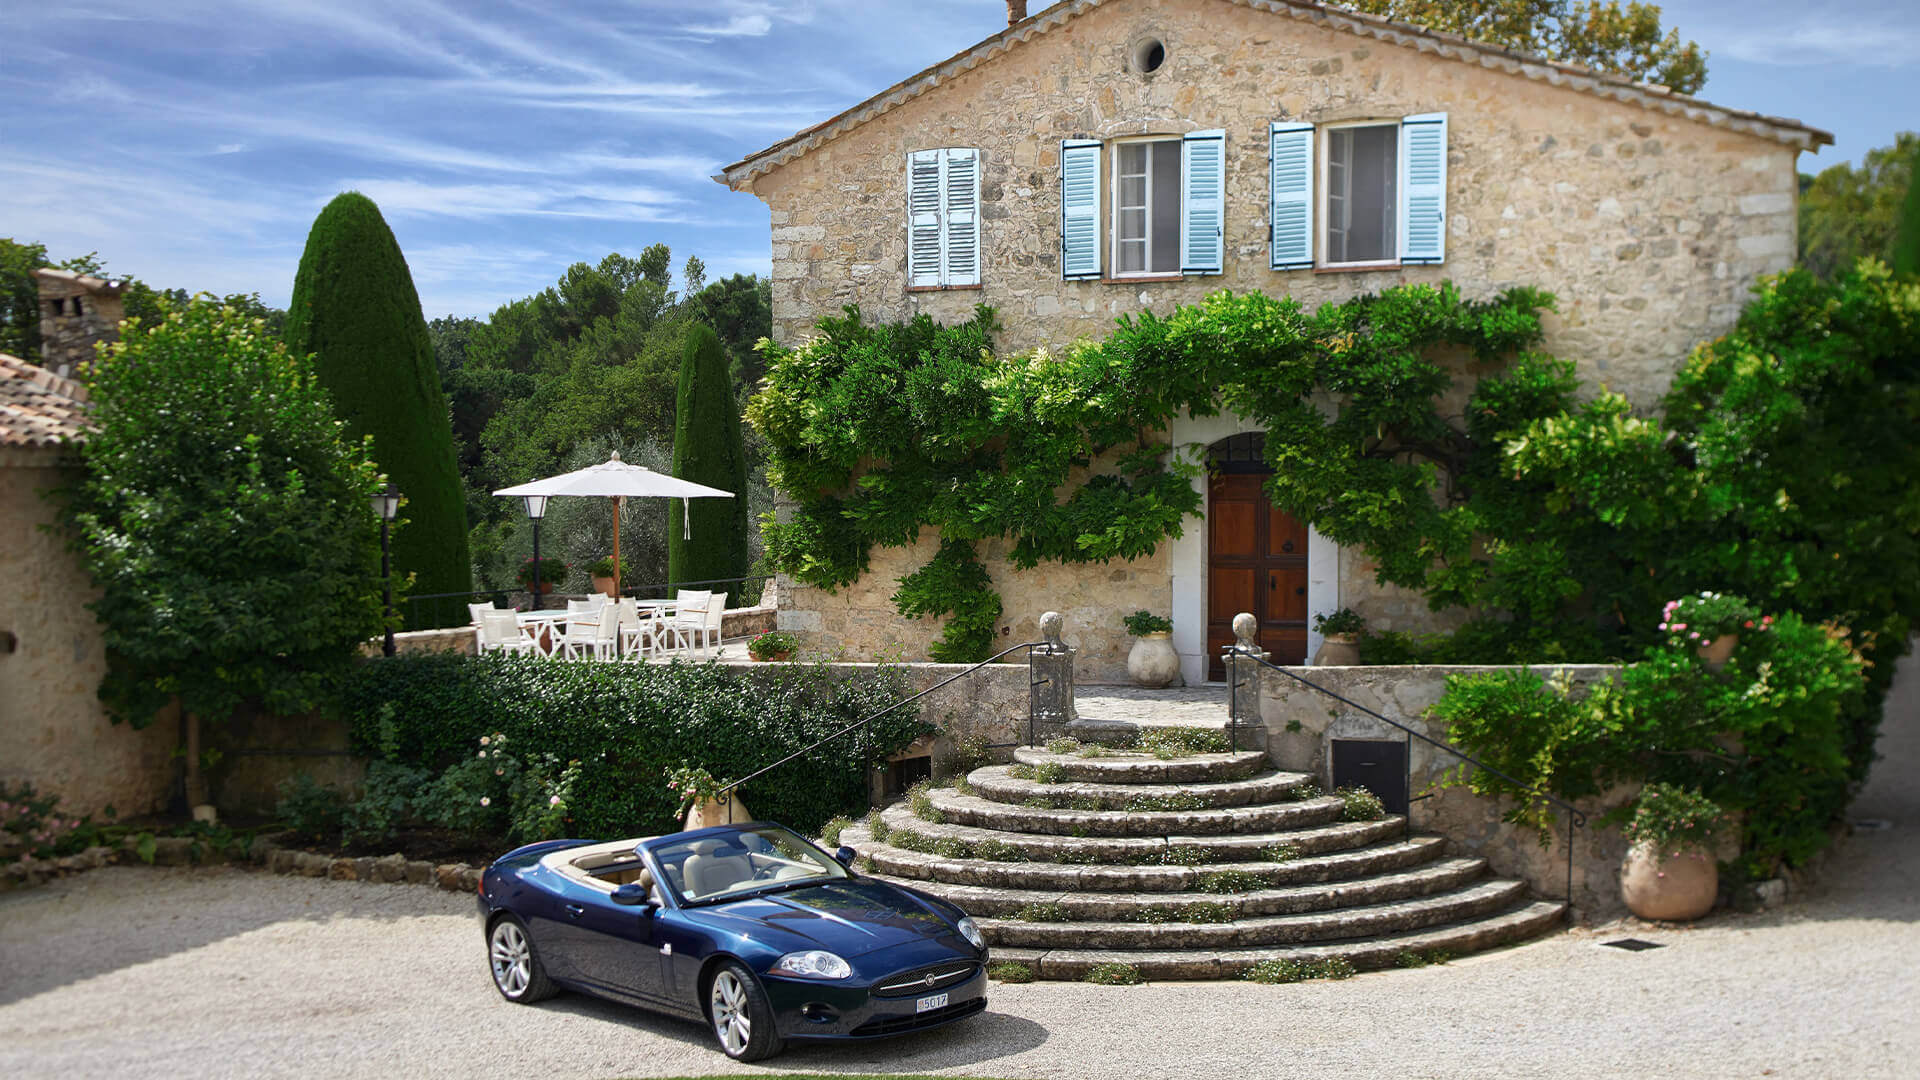 Large Domain Valbonne entrance to villa with jaguar in front